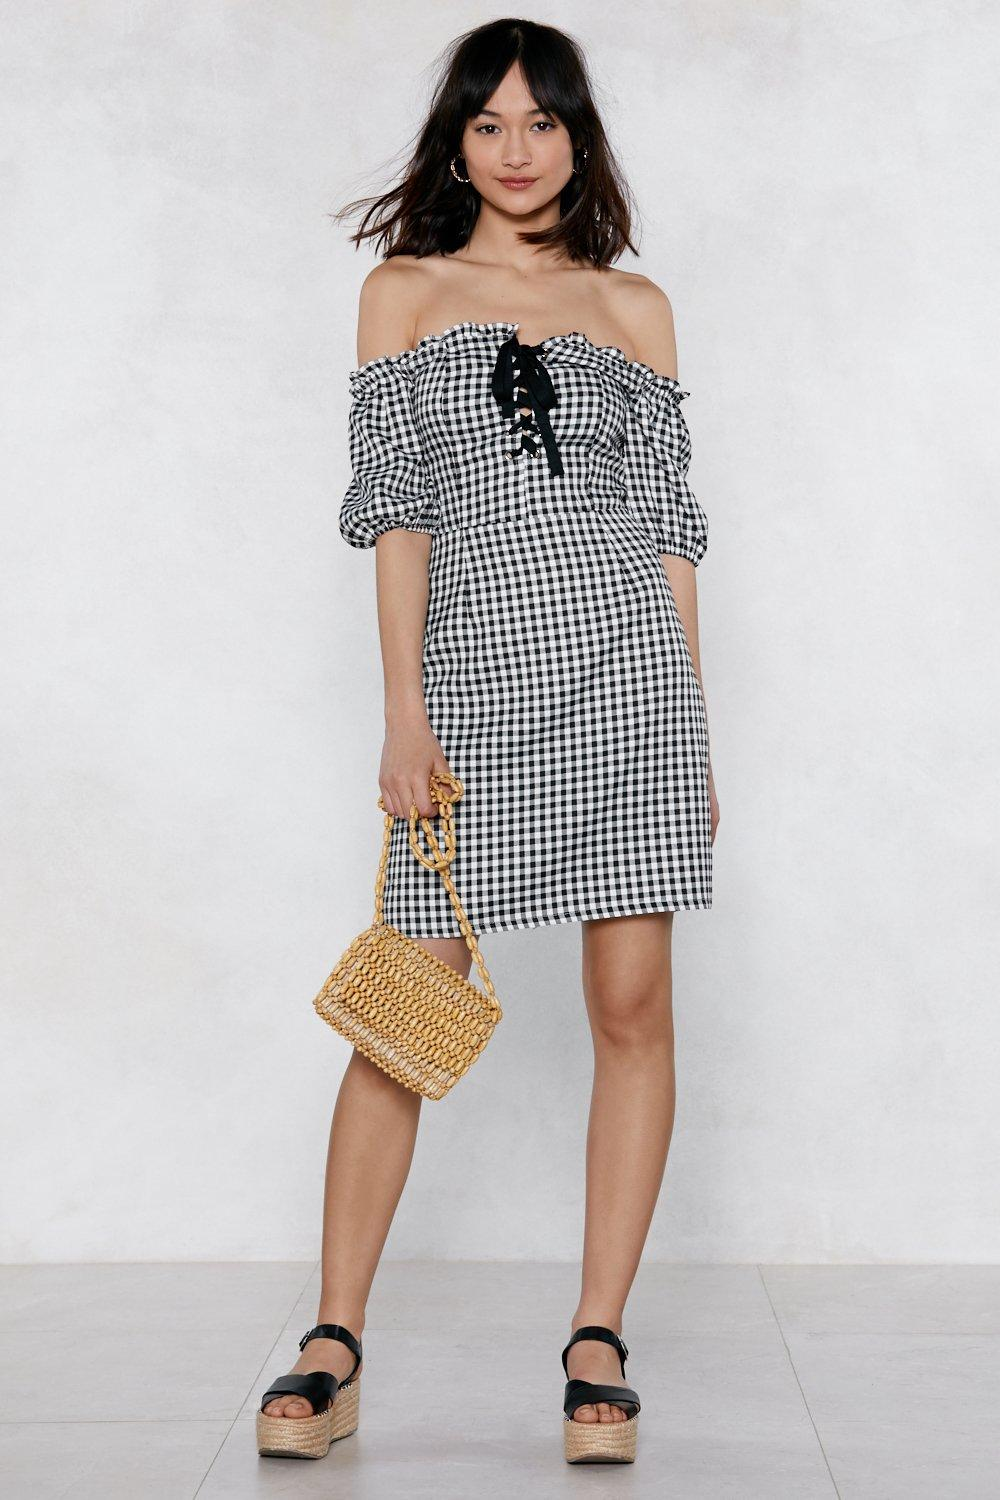 bb2fc056bfc Womens Black Almost Square Gingham Dress. Hover to zoom